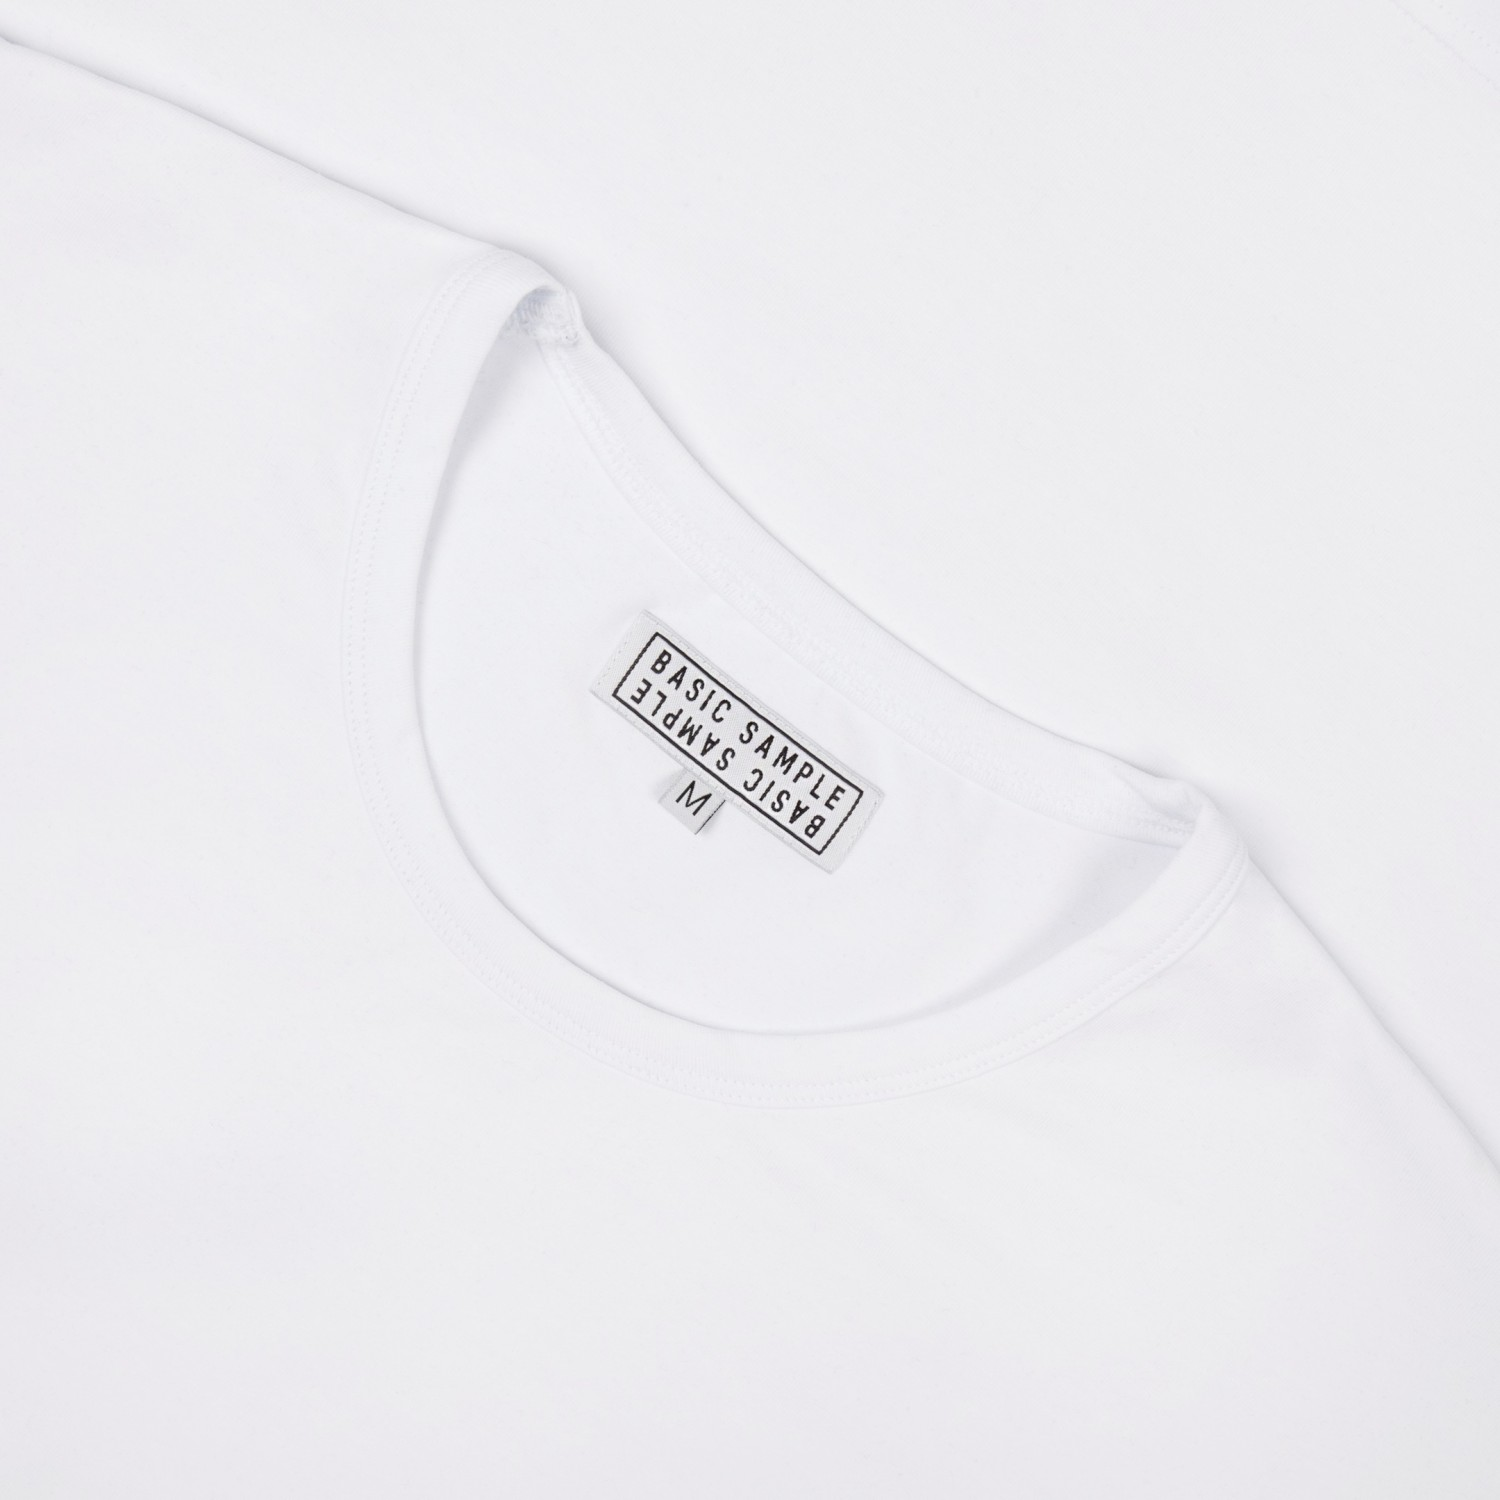 Футболка Basic Sample - Basic White Tee